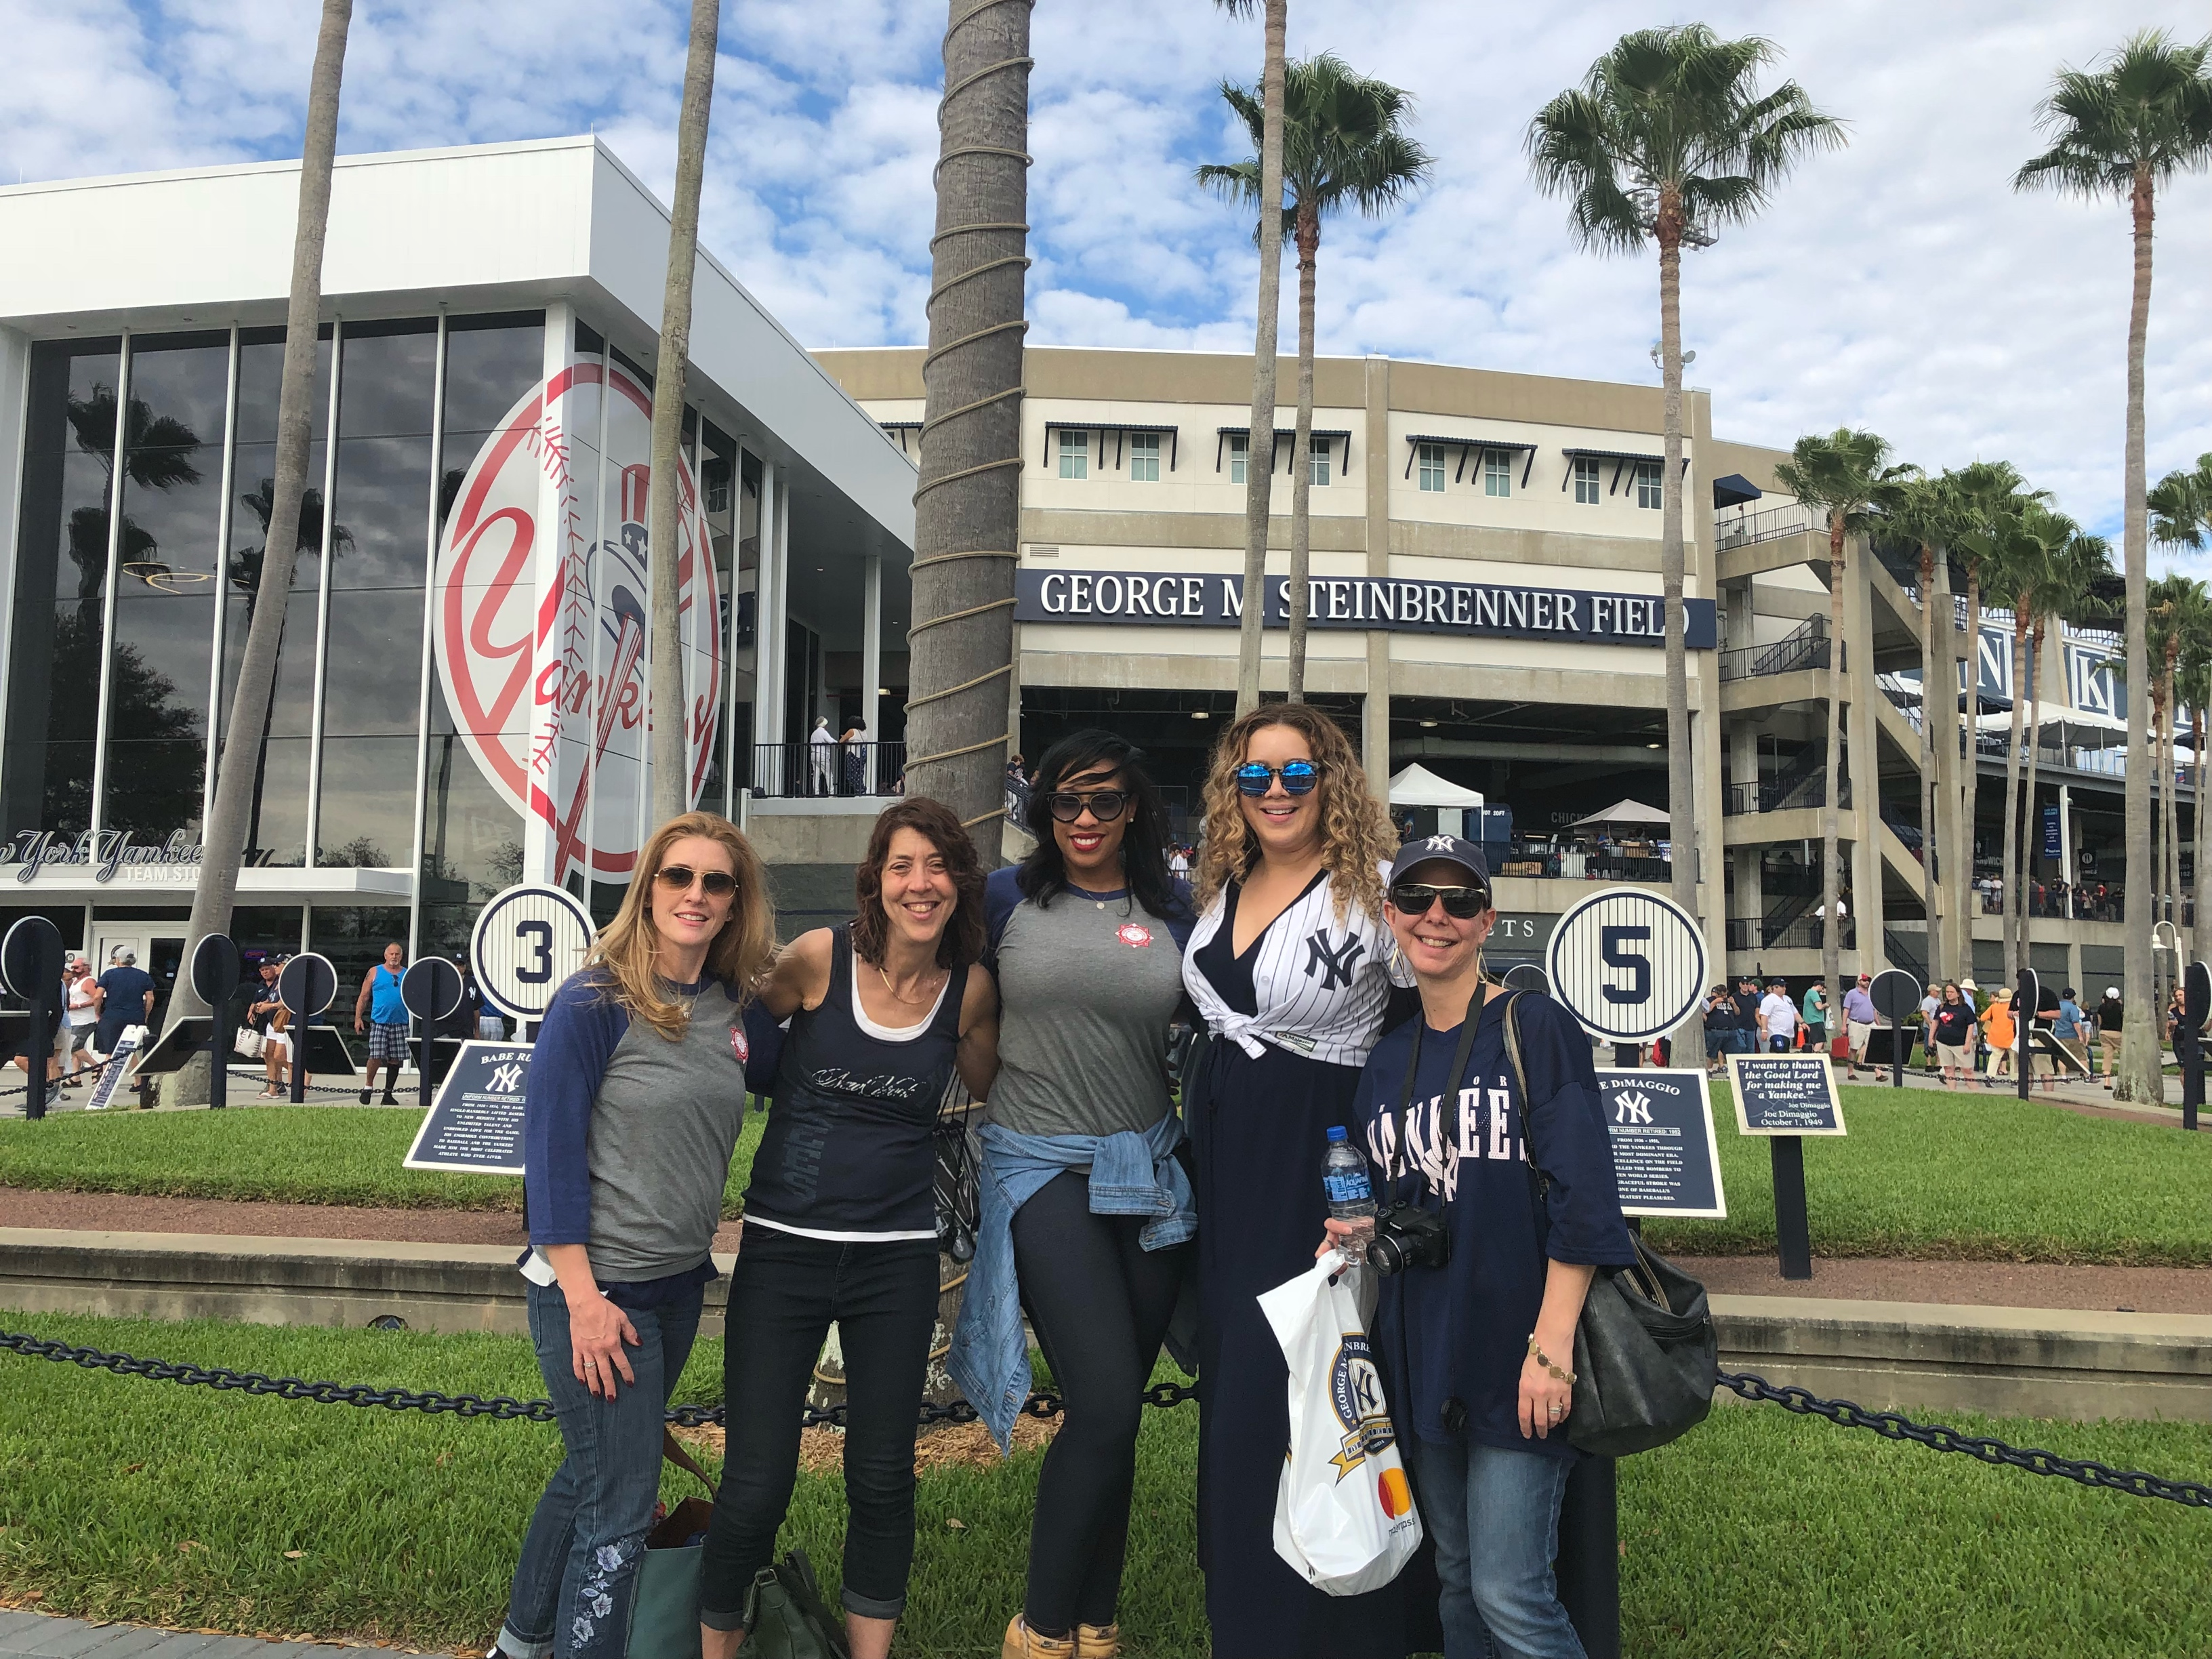 Take Me Out To The Ball Game With Toyota! #ToyotaGrandSlam